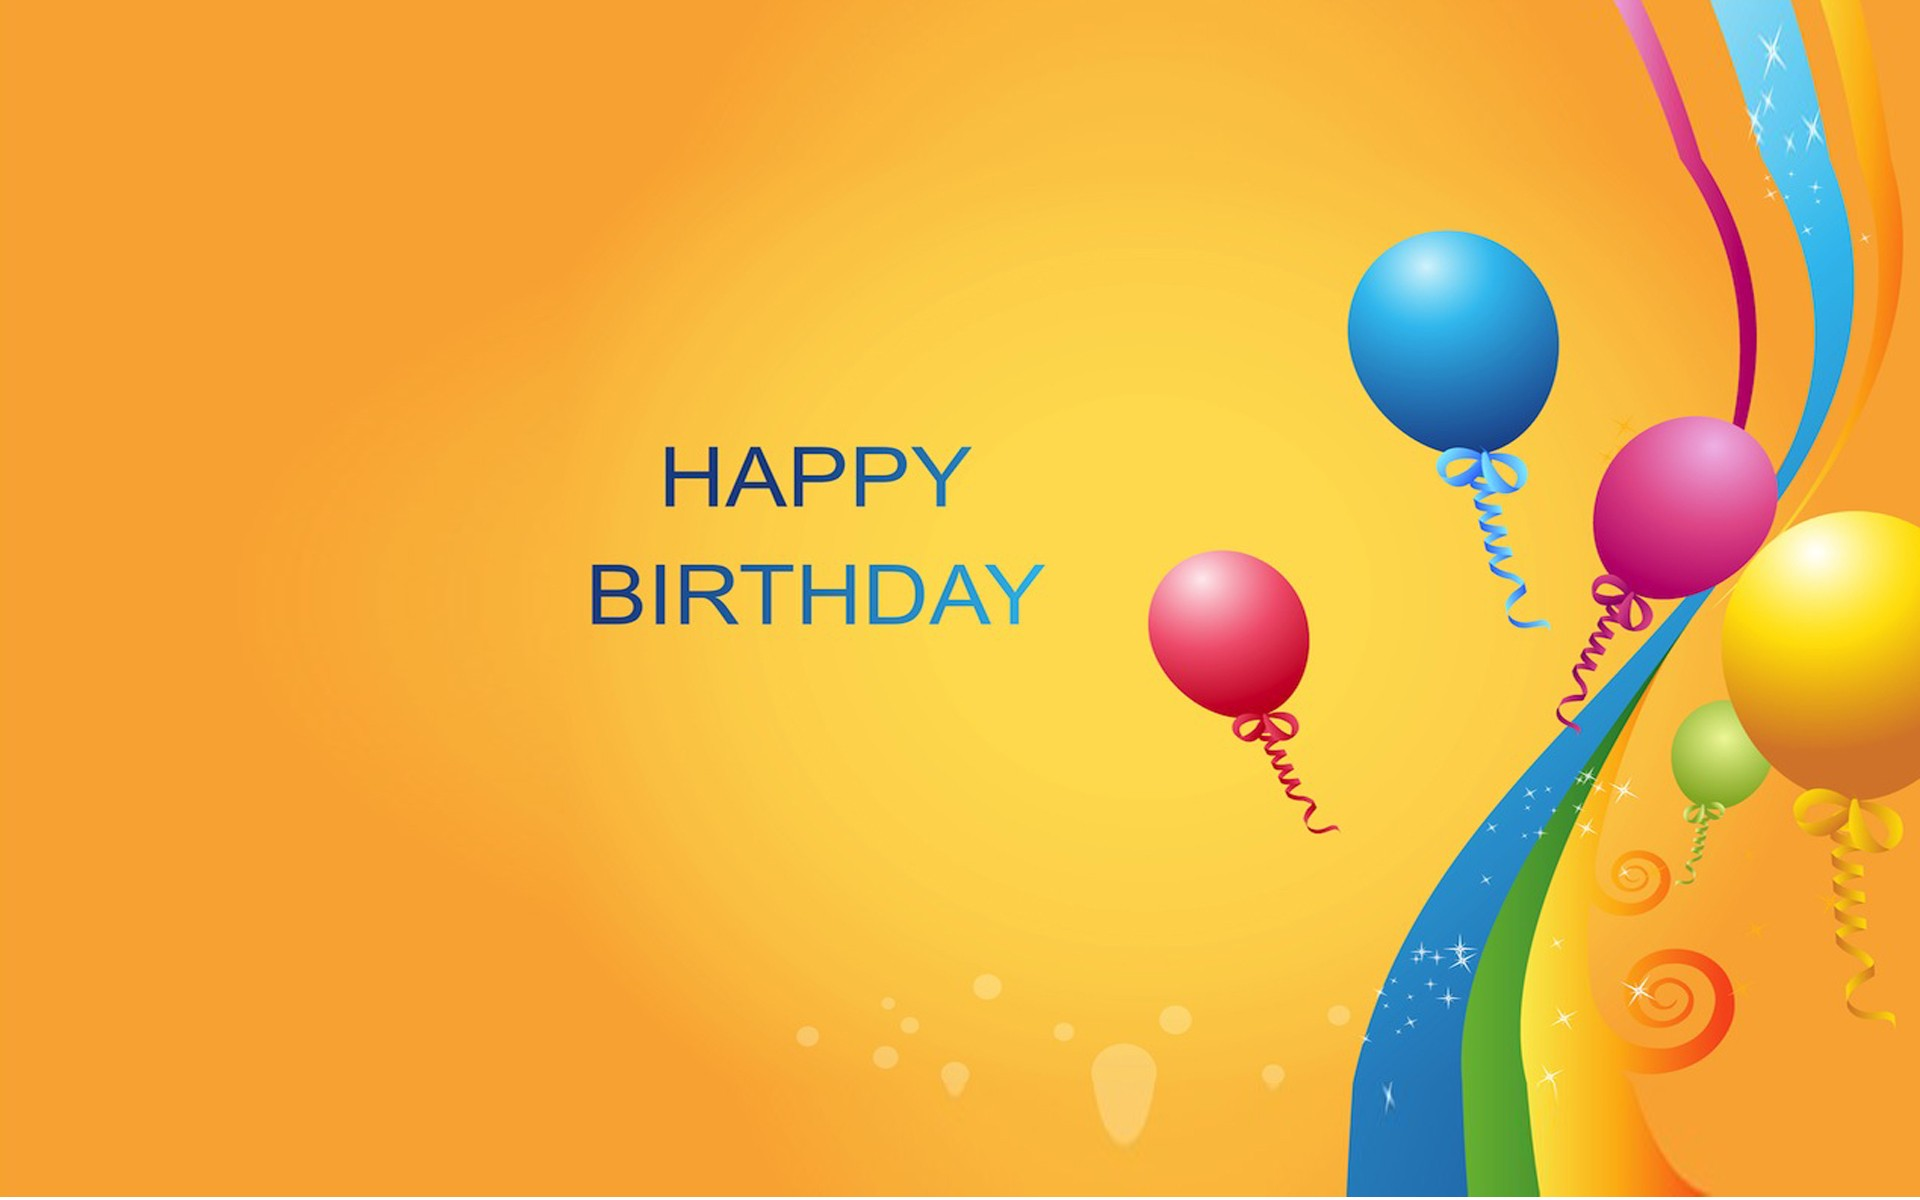 Happy Birthday wallpaper images pictures photos 1920x1200